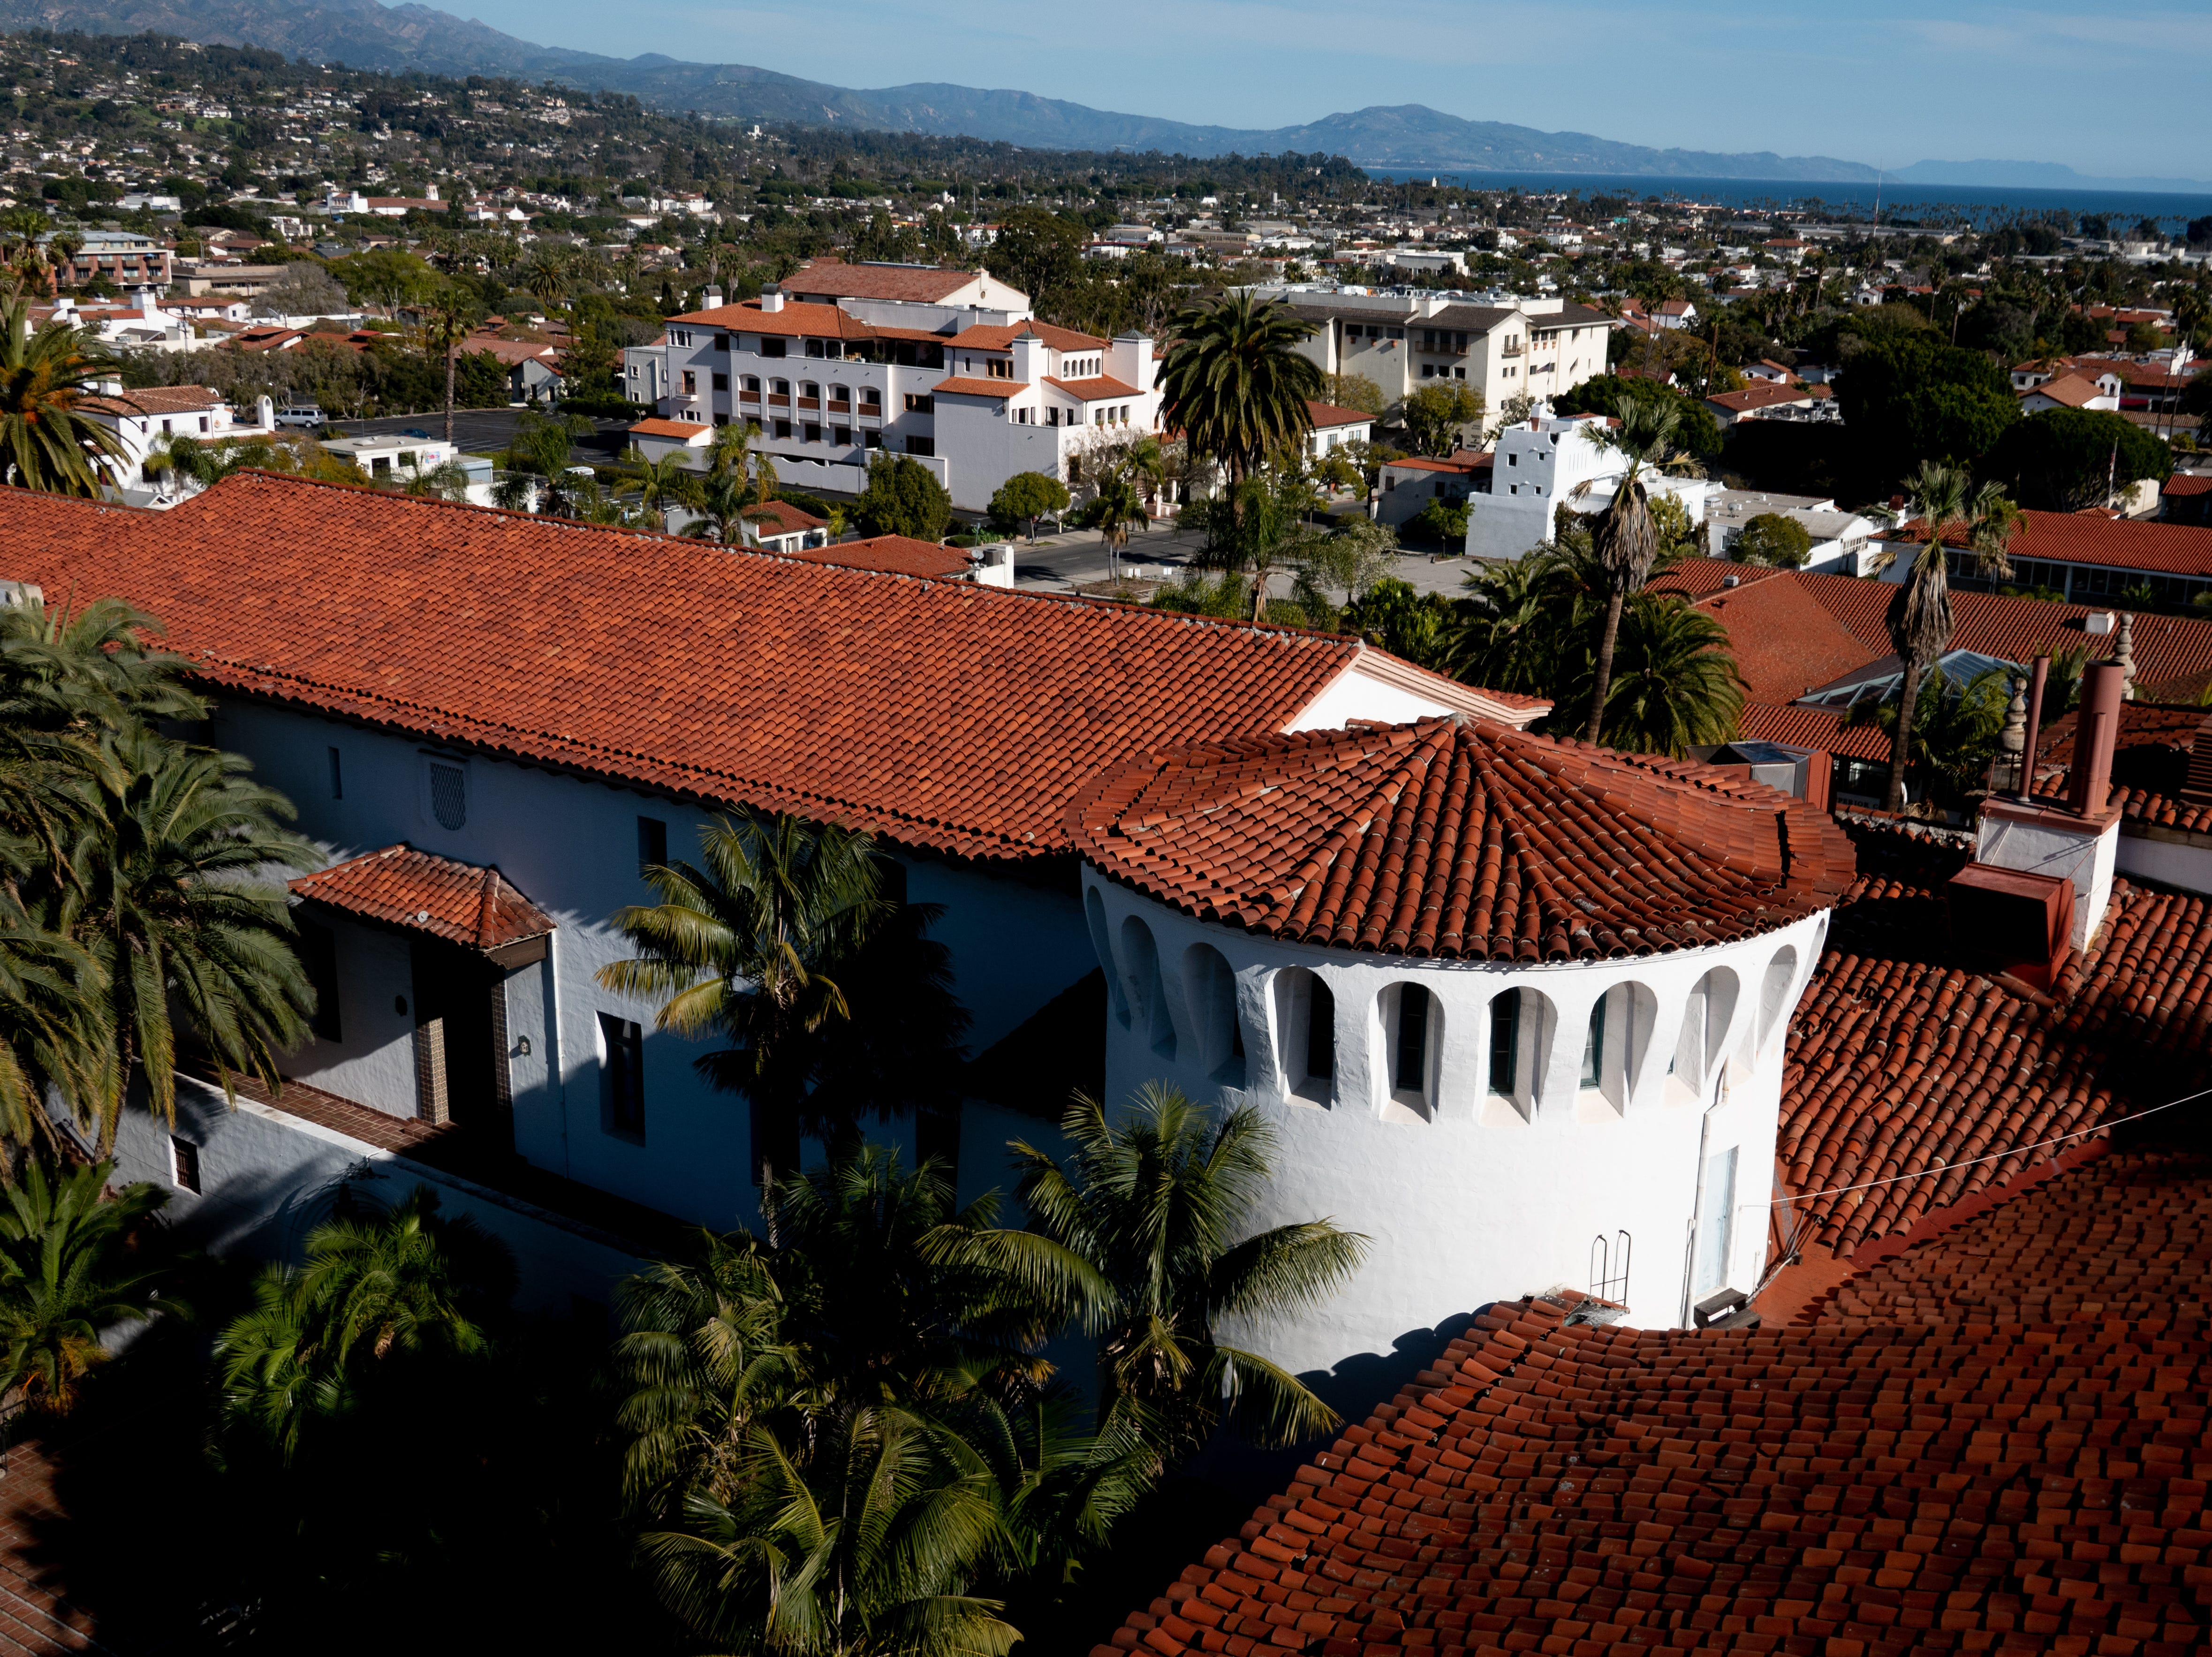 The red roofs of the Santa Barbara county courthouse